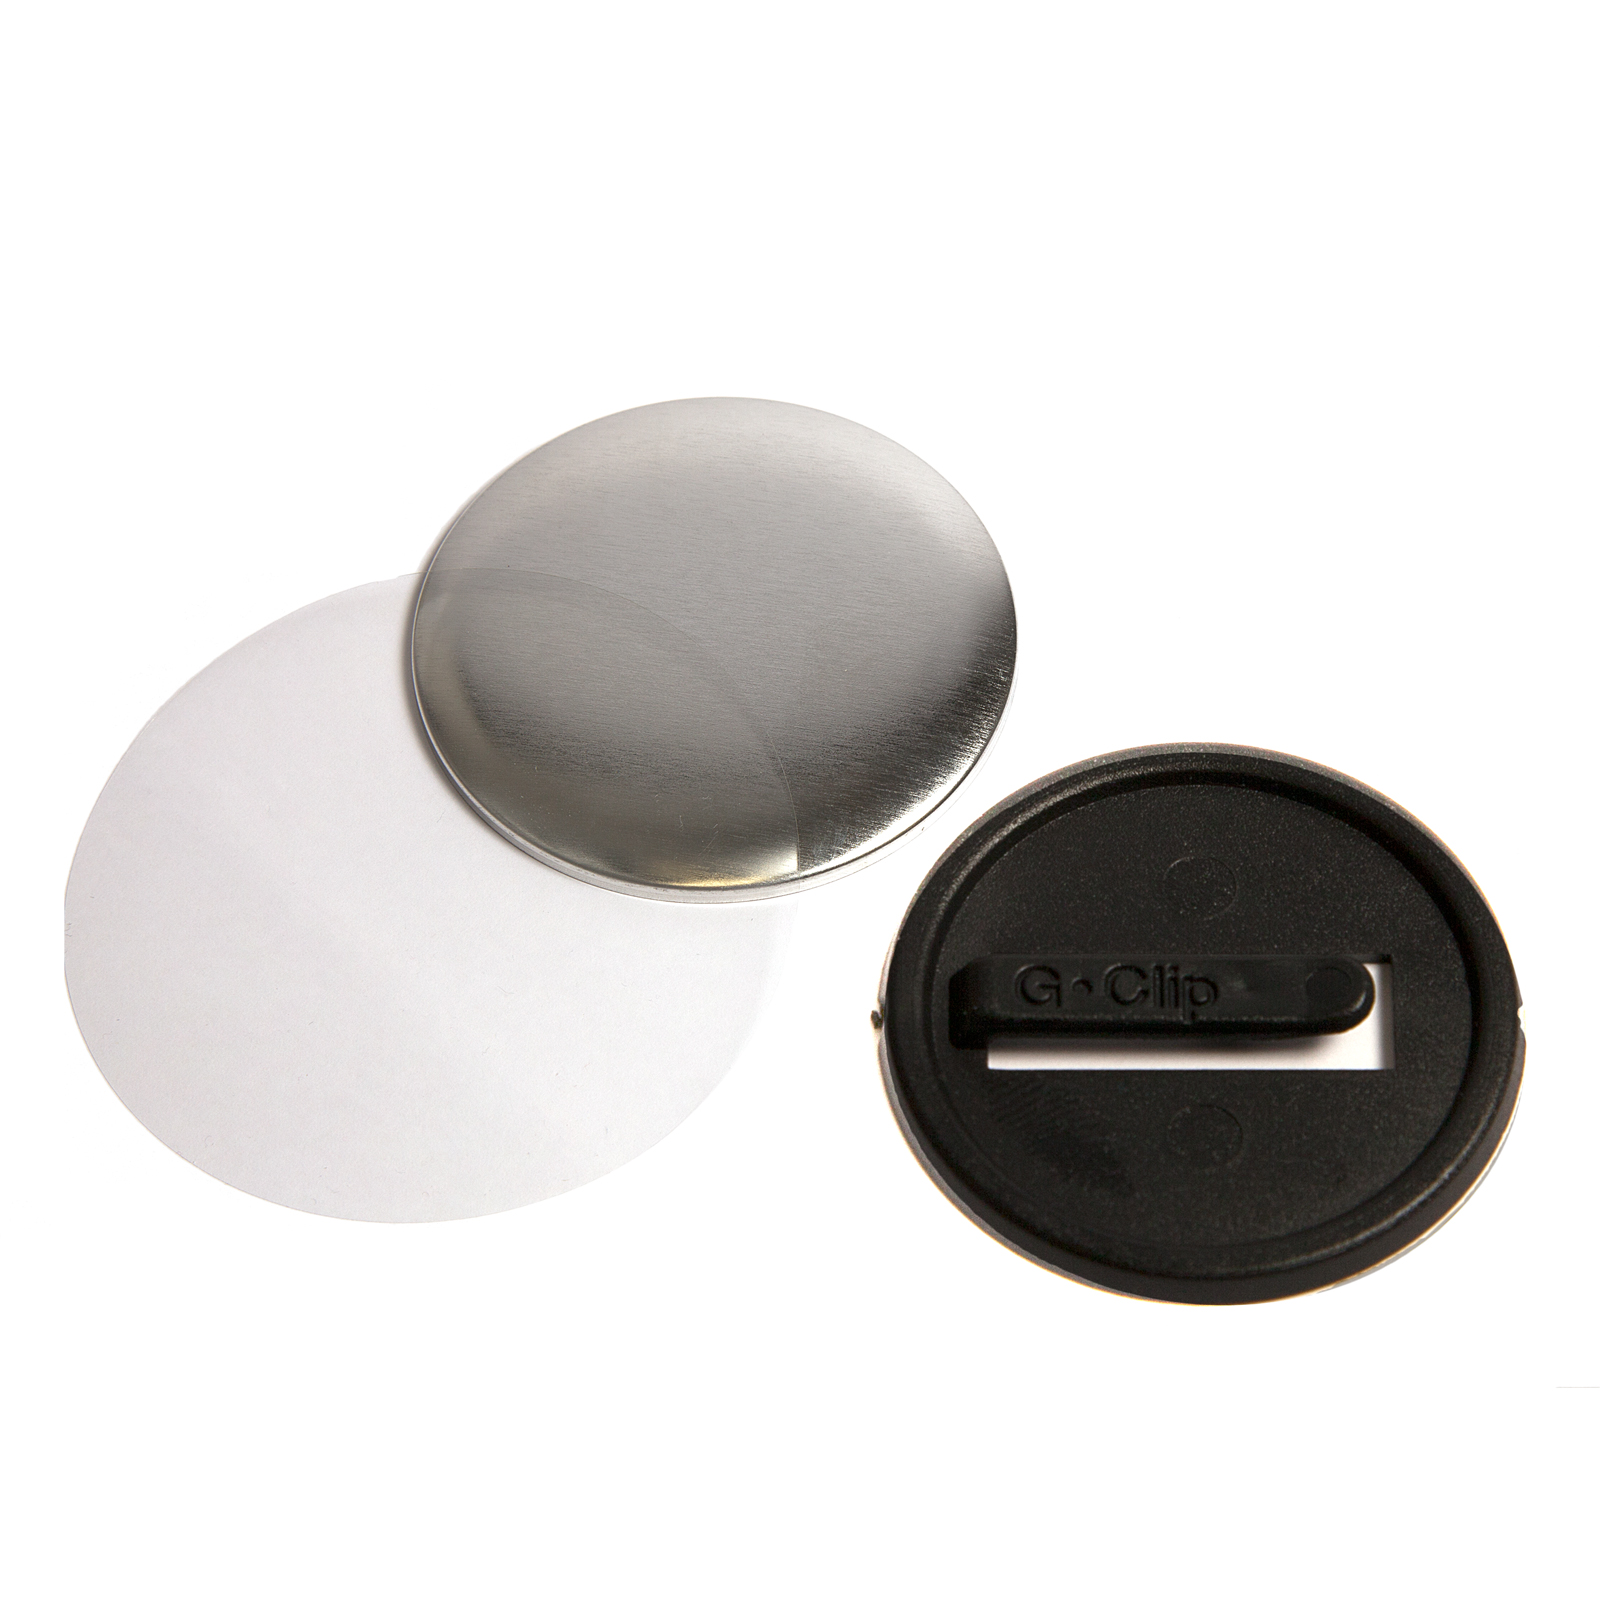 G Series 38mm Safety Button Badge Components